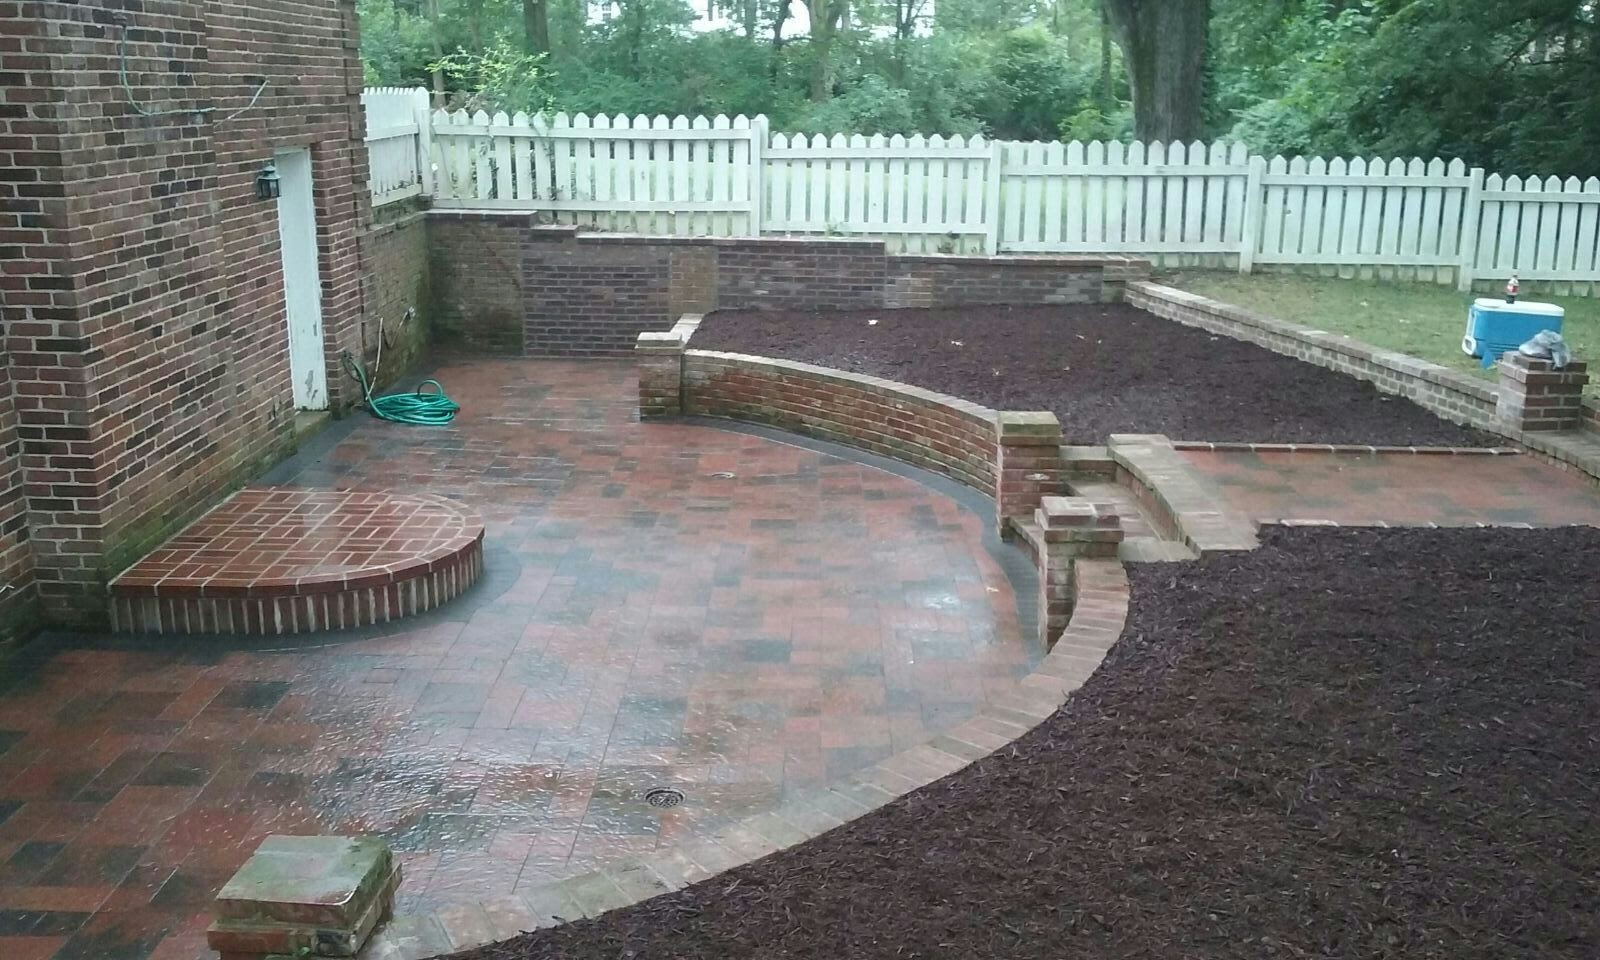 paver-patio-installation & Paver Patio Design Installation - Lawn Care and Lanscaping Services